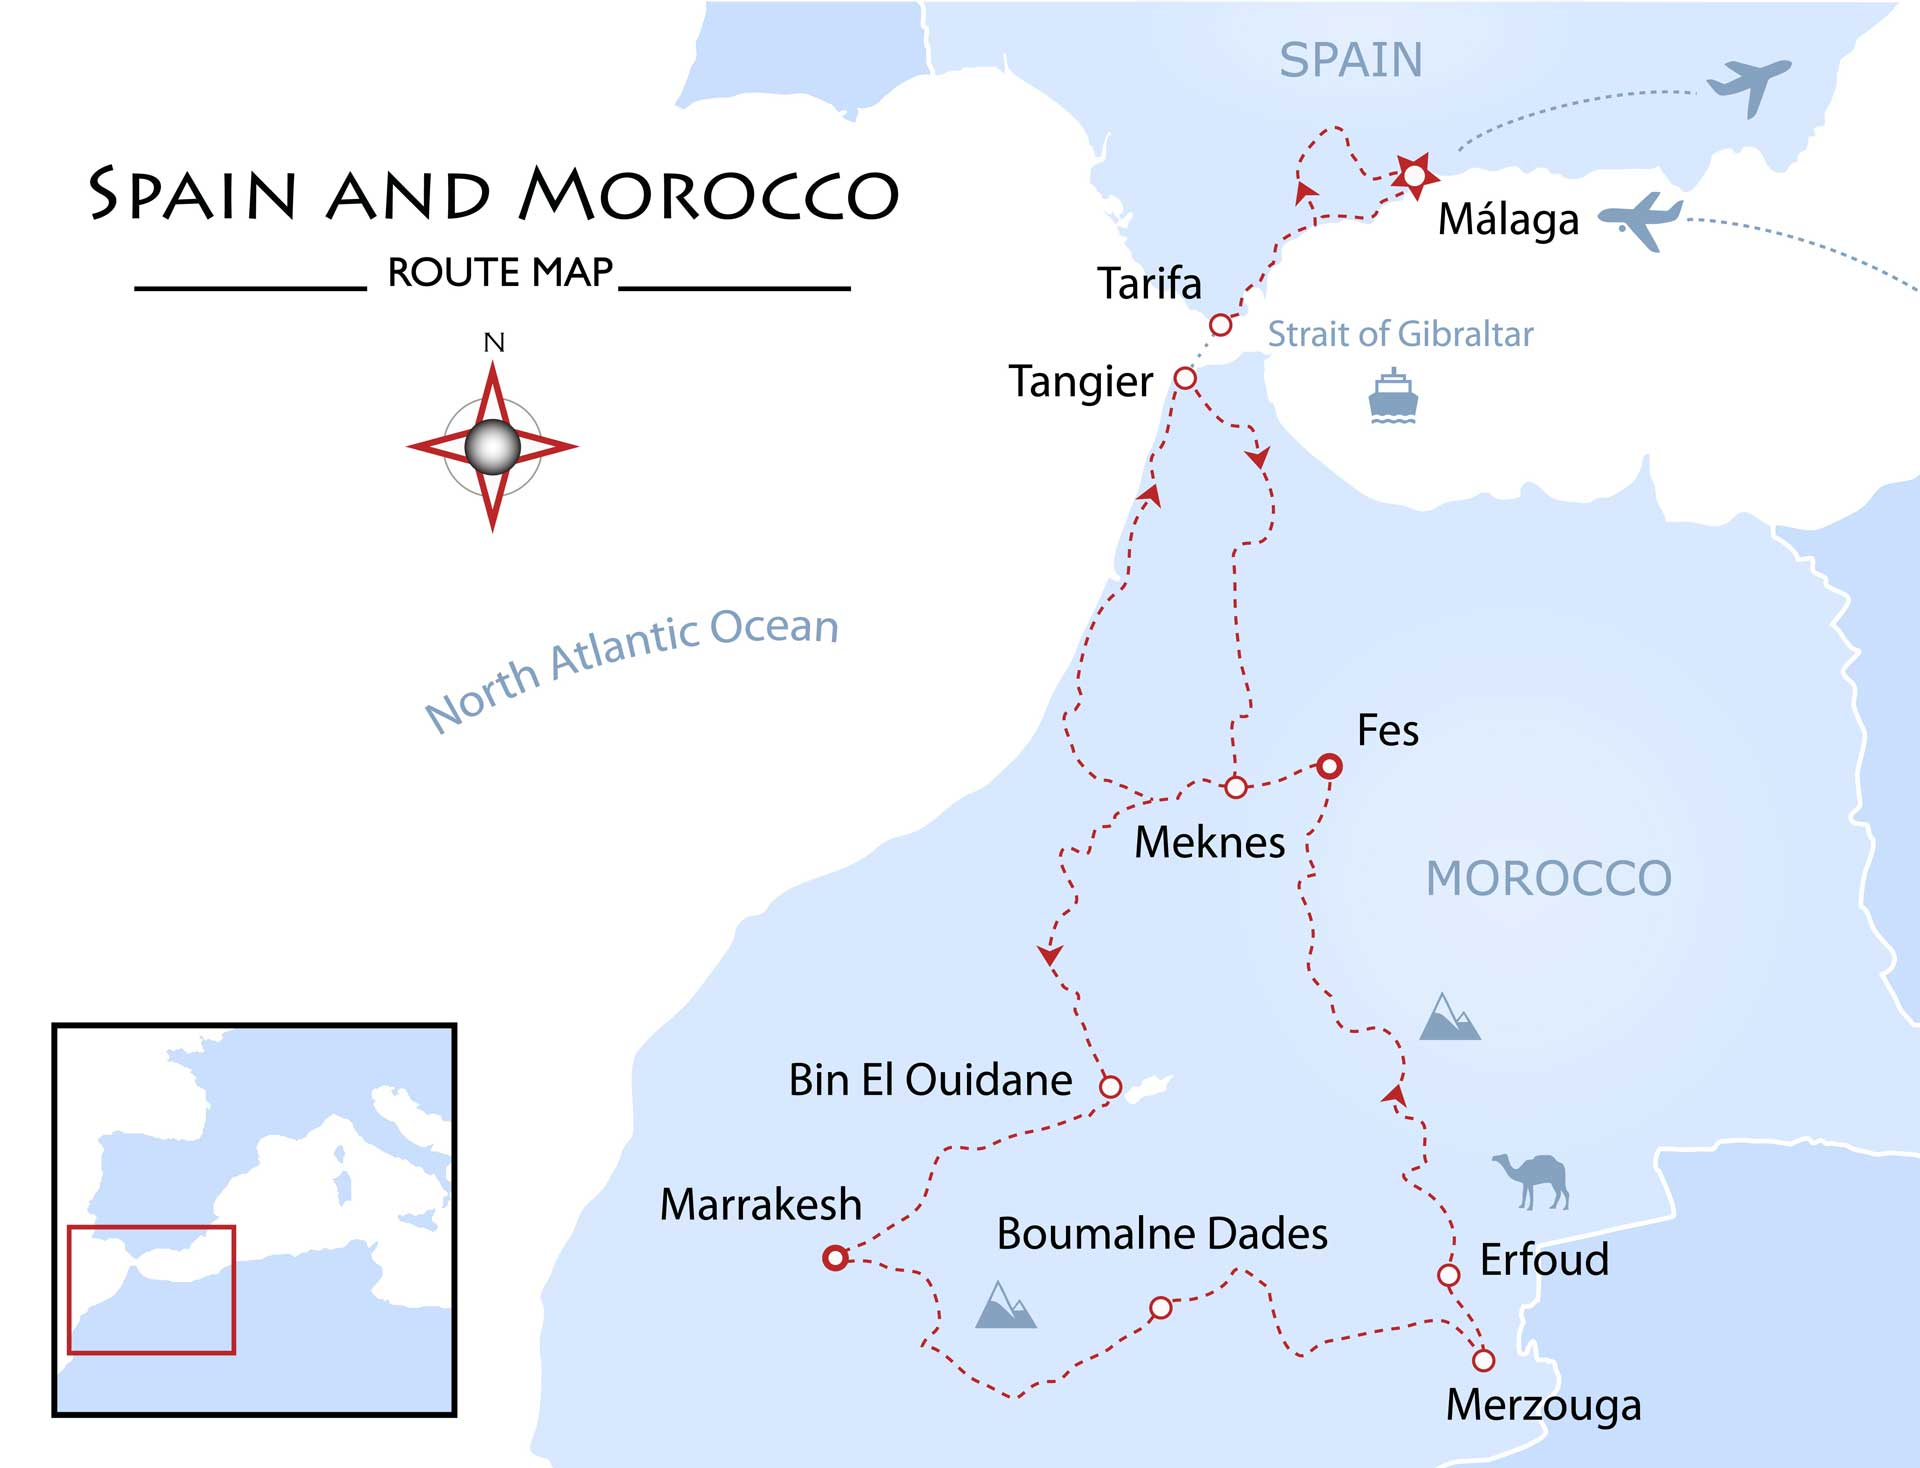 Spain and Morocco Map